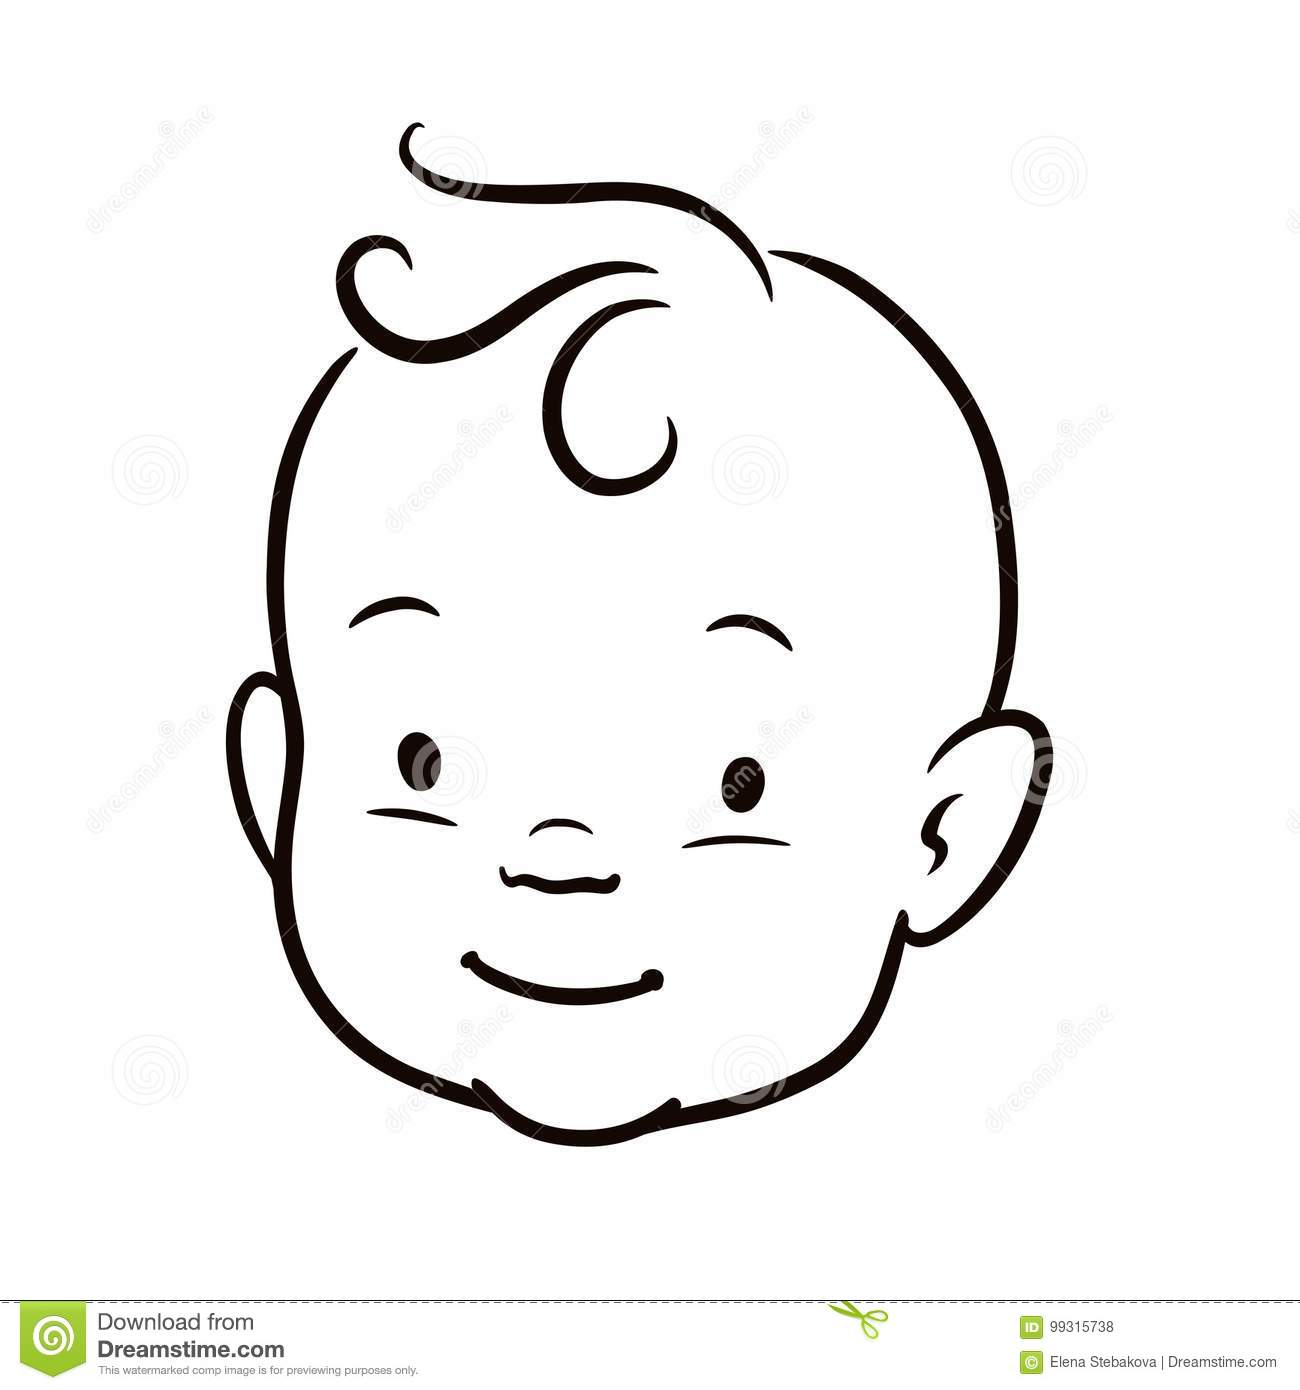 Line Drawing Baby Face : Black and white simple line vector cartoon illustration of